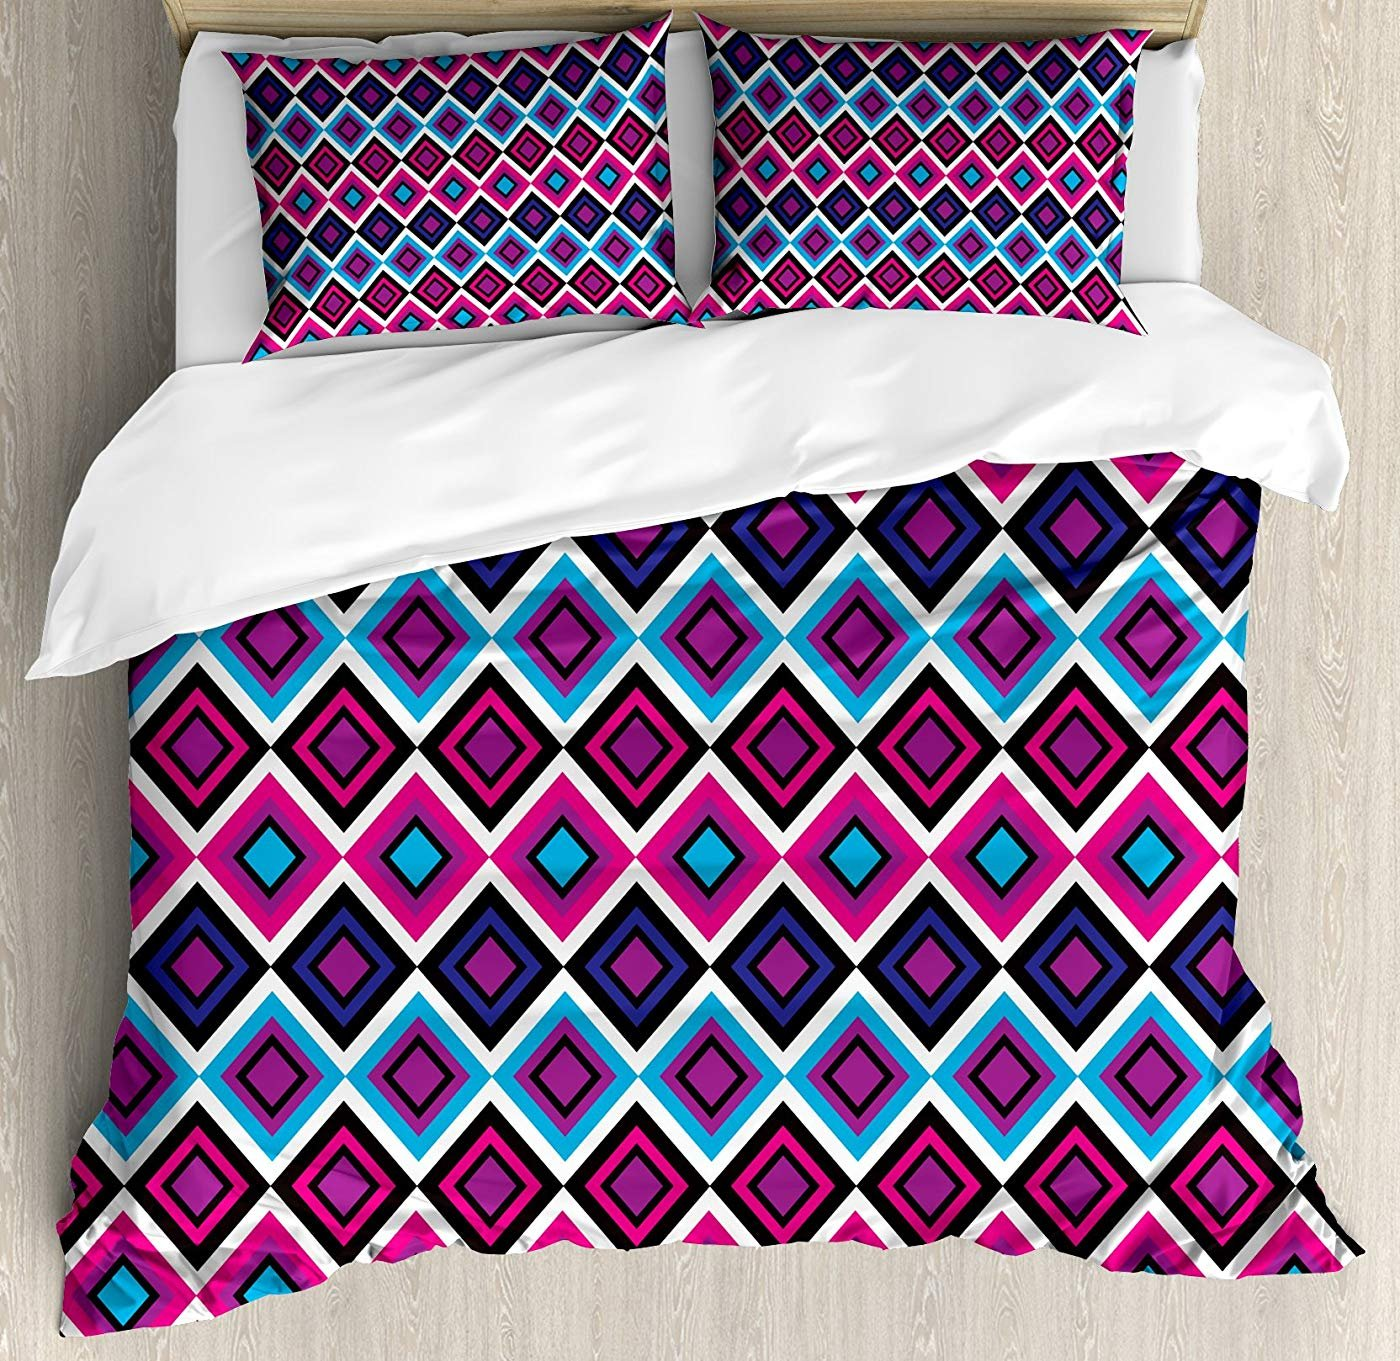 Multi 3 Queen Eye Duvet Cover Set Twin Size, Flirty Attractive Woman with bluee Eyes and Thick Lashes Beauty Glamor Youth,Lightweight Microfiber Duvet Cover Sets, bluee Black Pale Grey